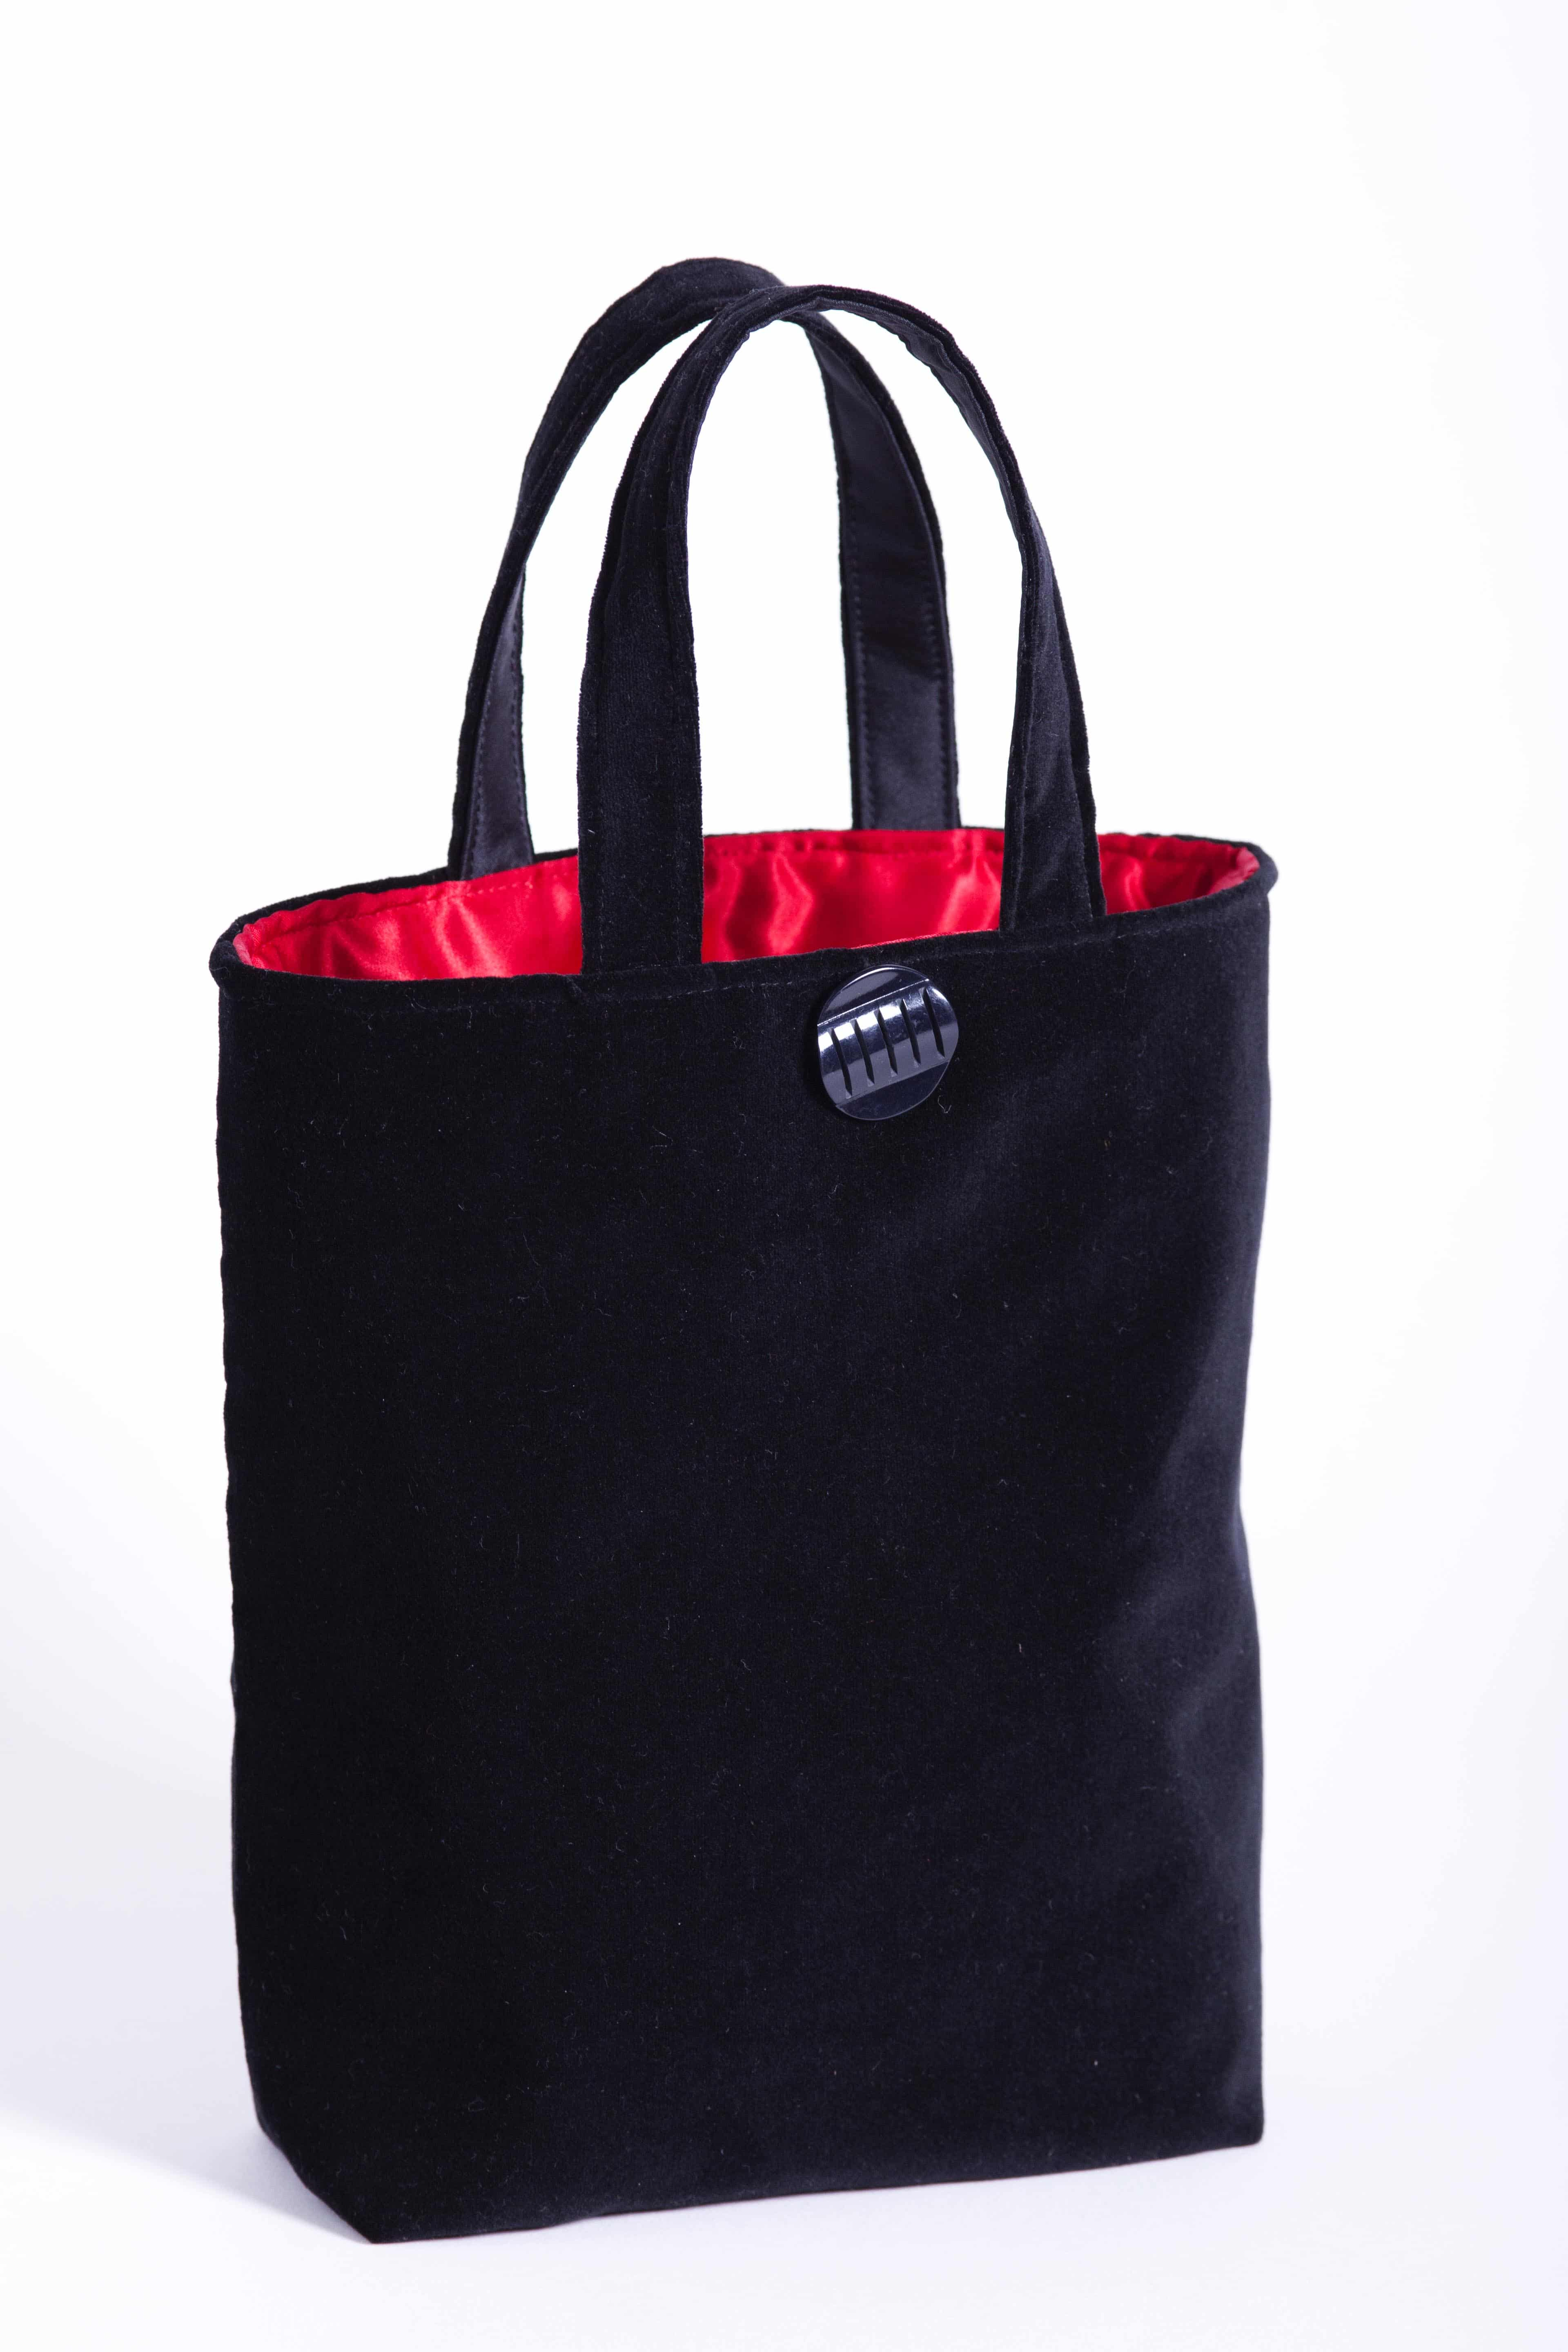 black velvet bag with red satin lining